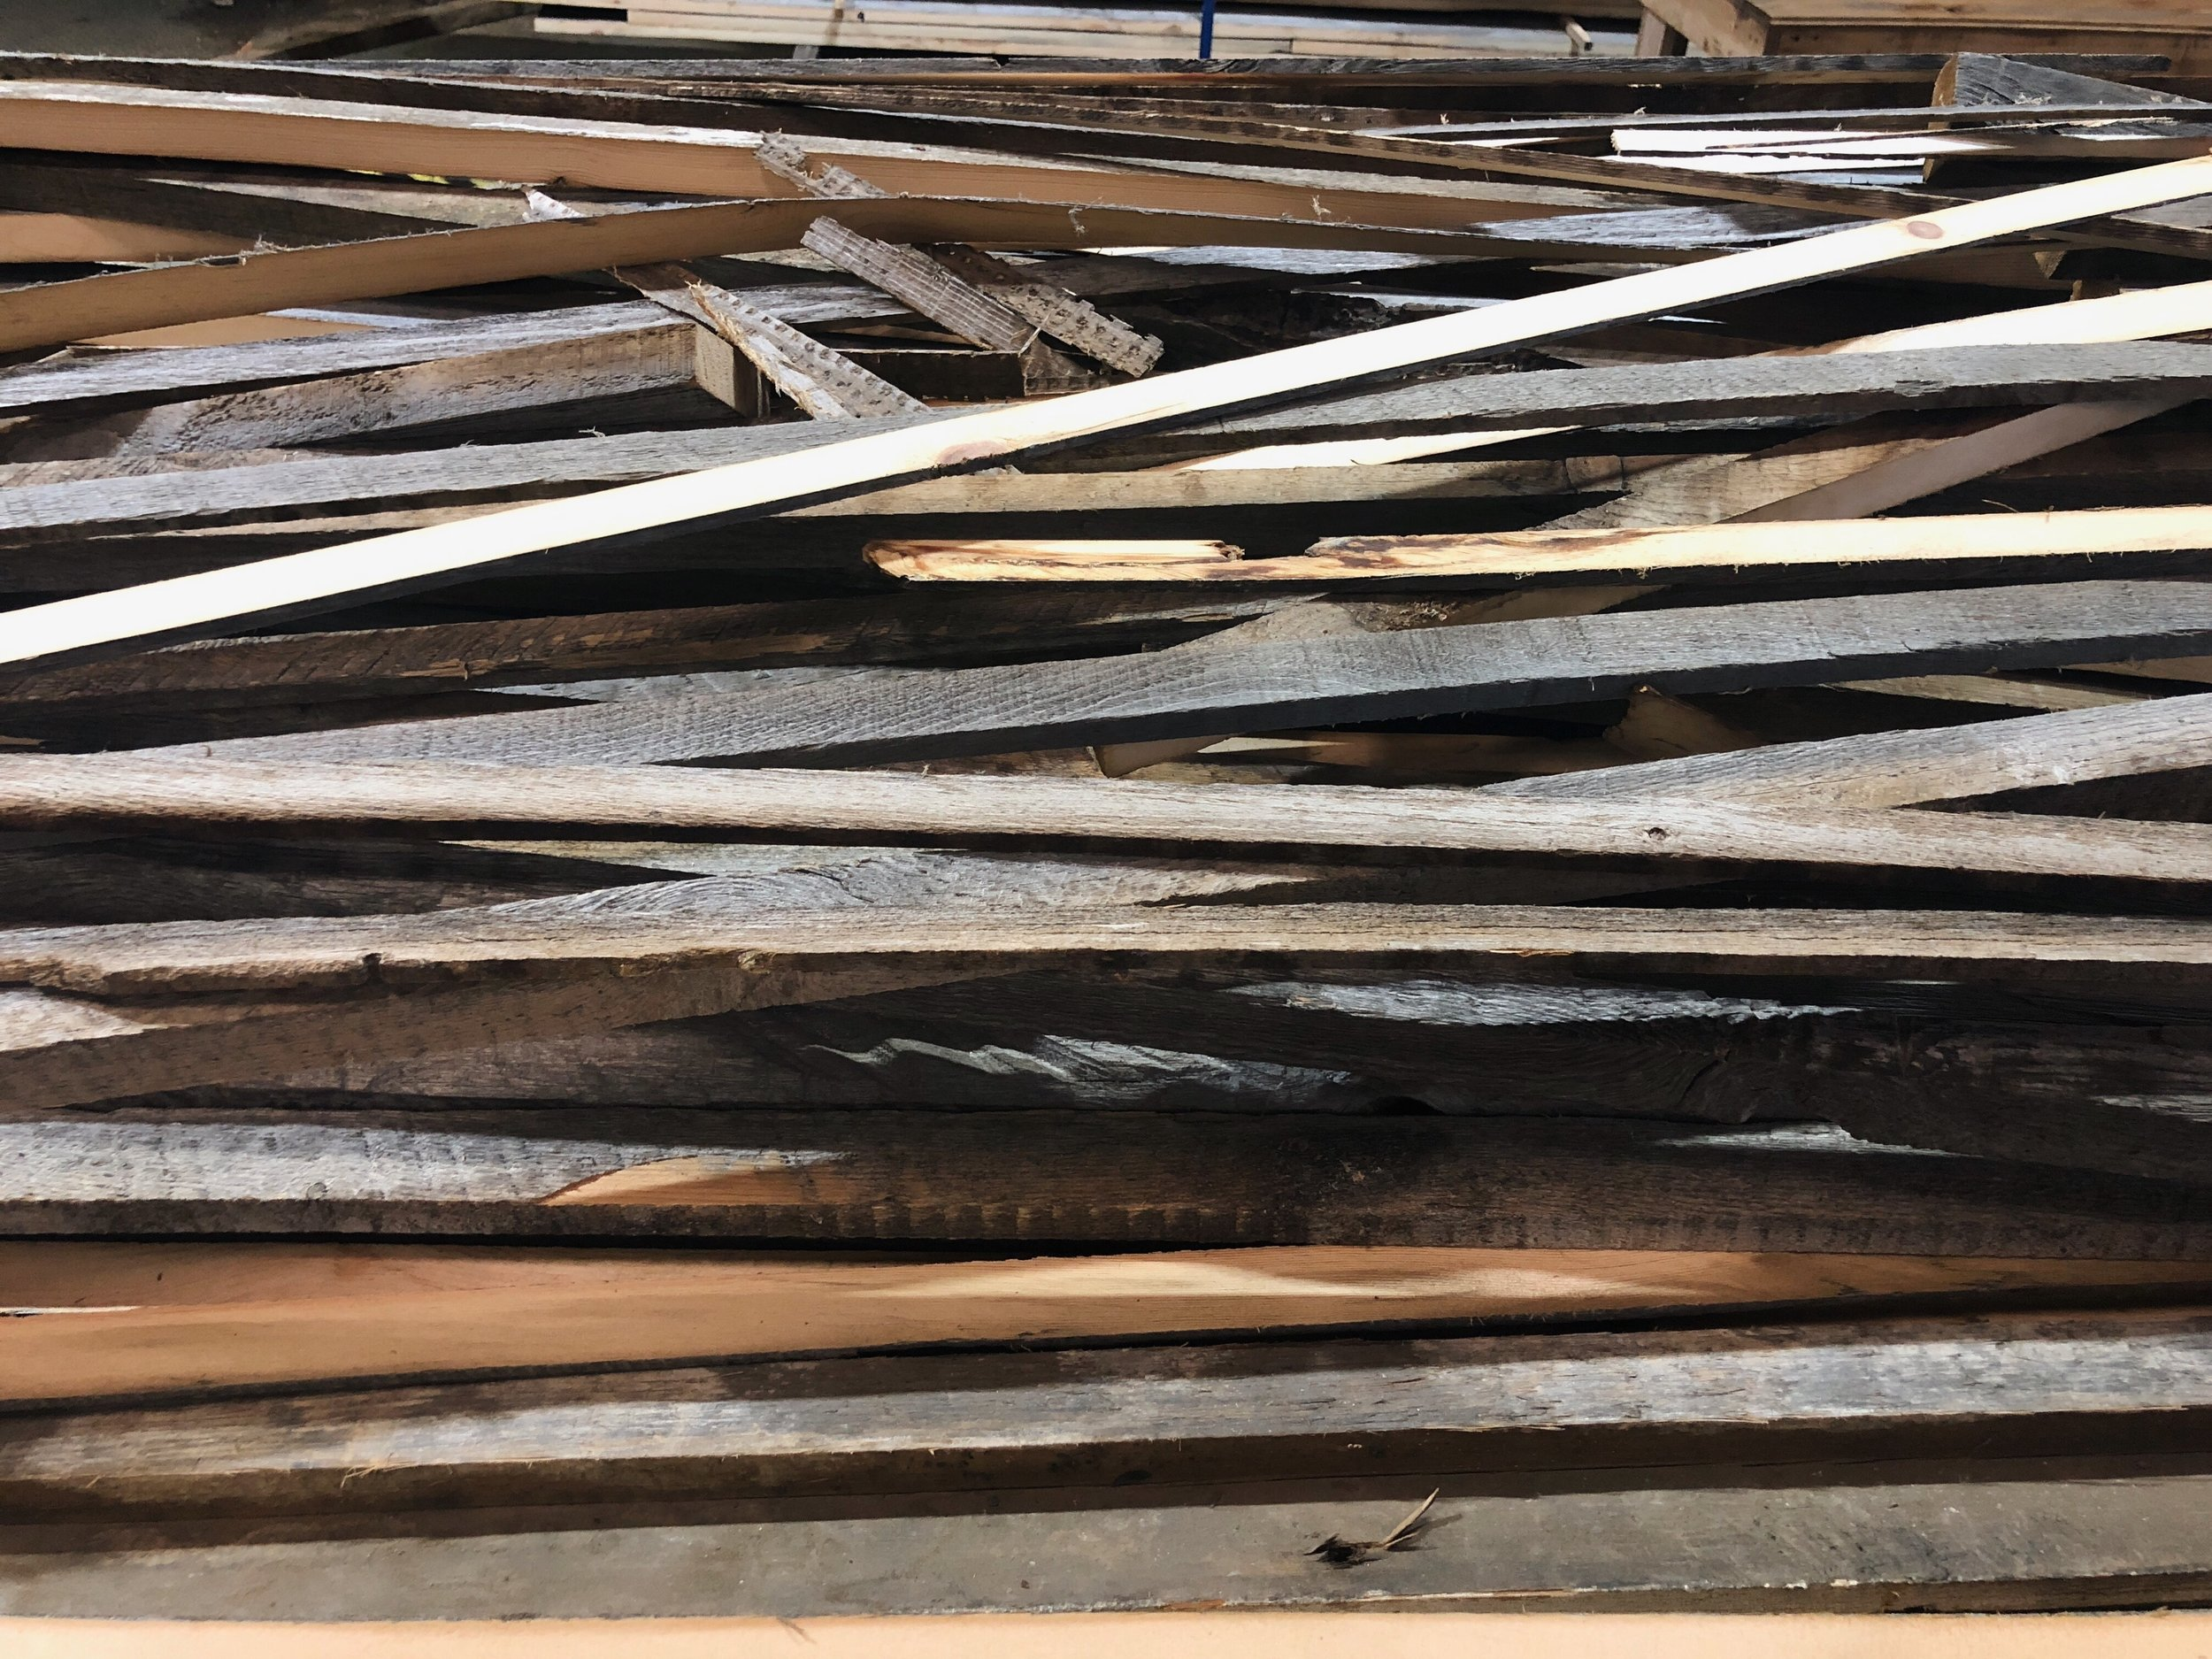 'Rippings,' scraps created during the process of milling Reclaimed White Pine planks at The Hudson Company Mill in Pine Plains, NY.